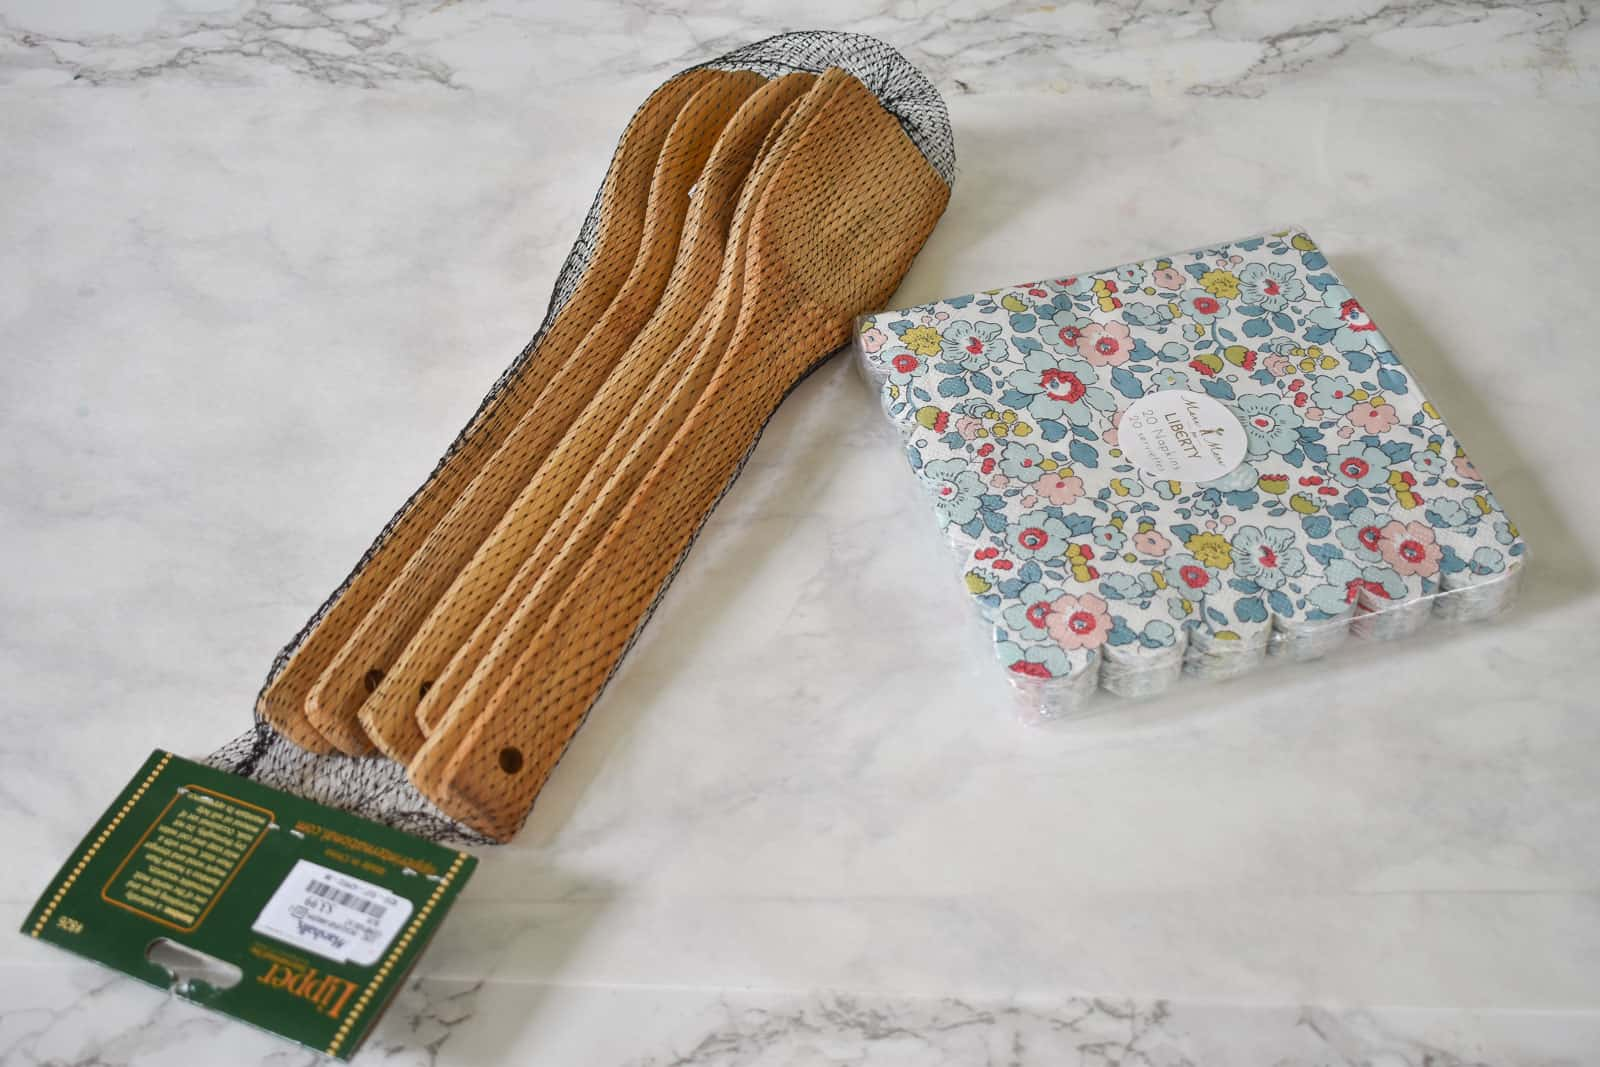 liberty print napkins and cooking utensils